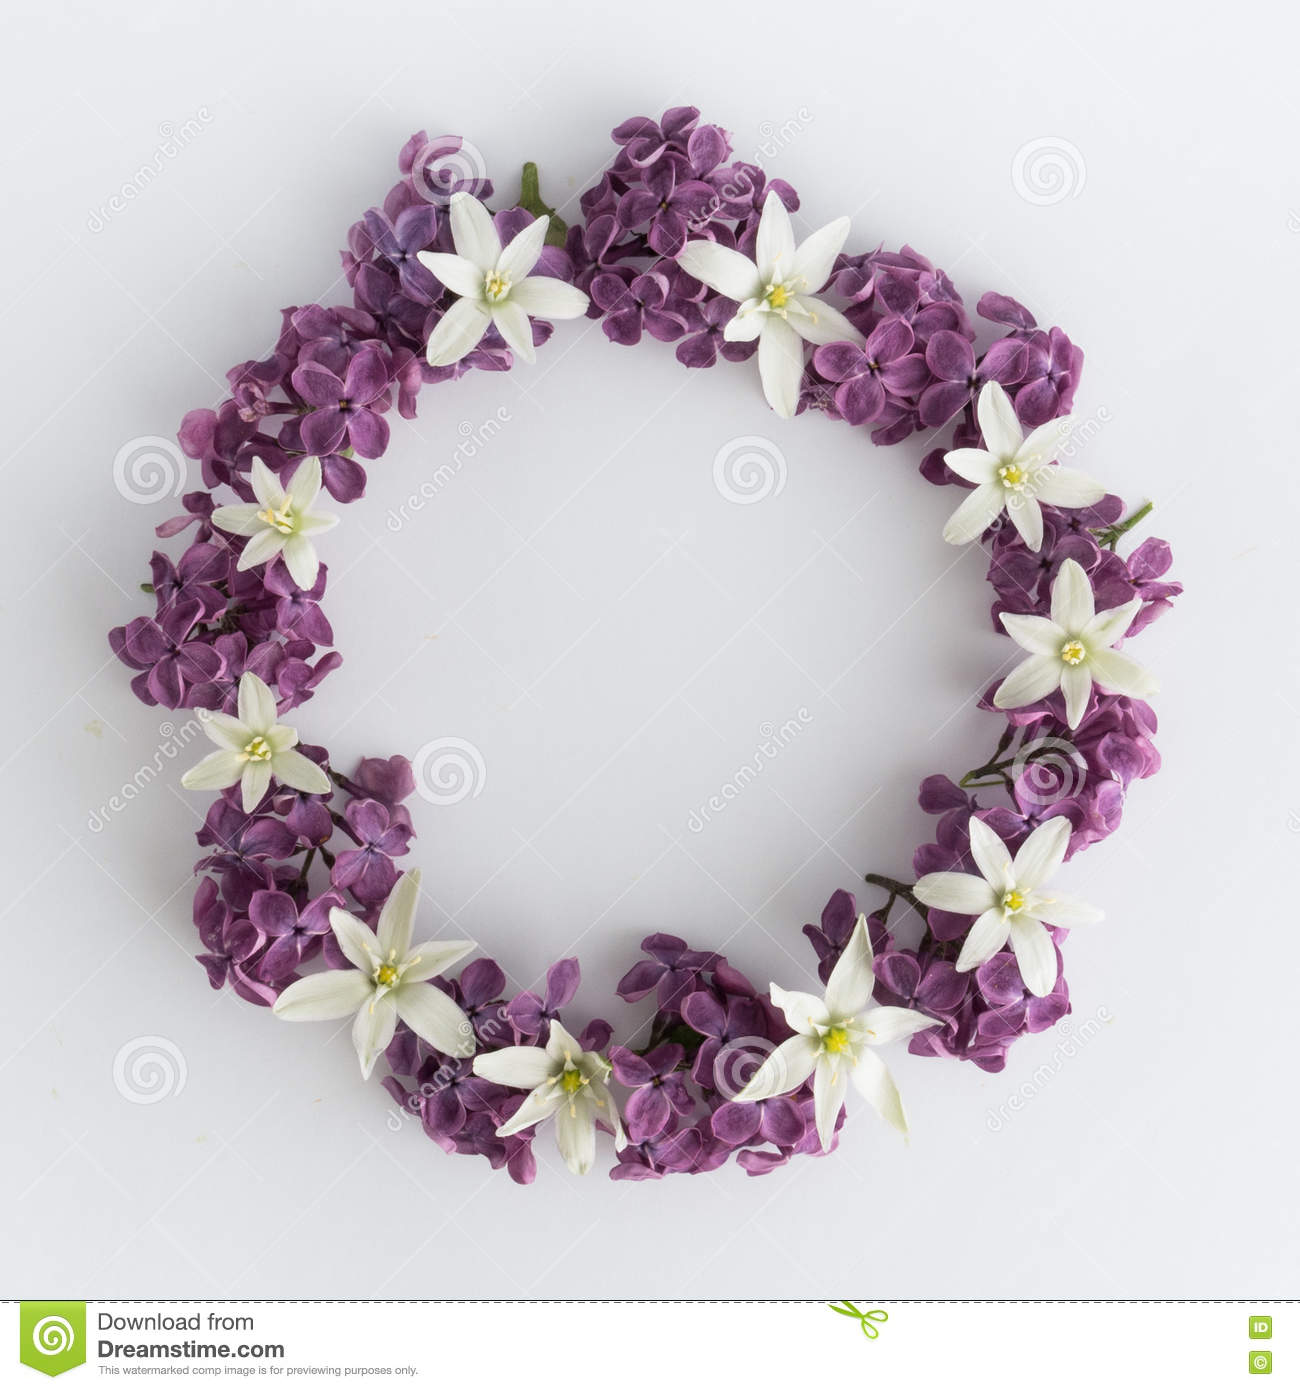 Circle Frame, Wreath Of Purple Flowers On A White Background ...